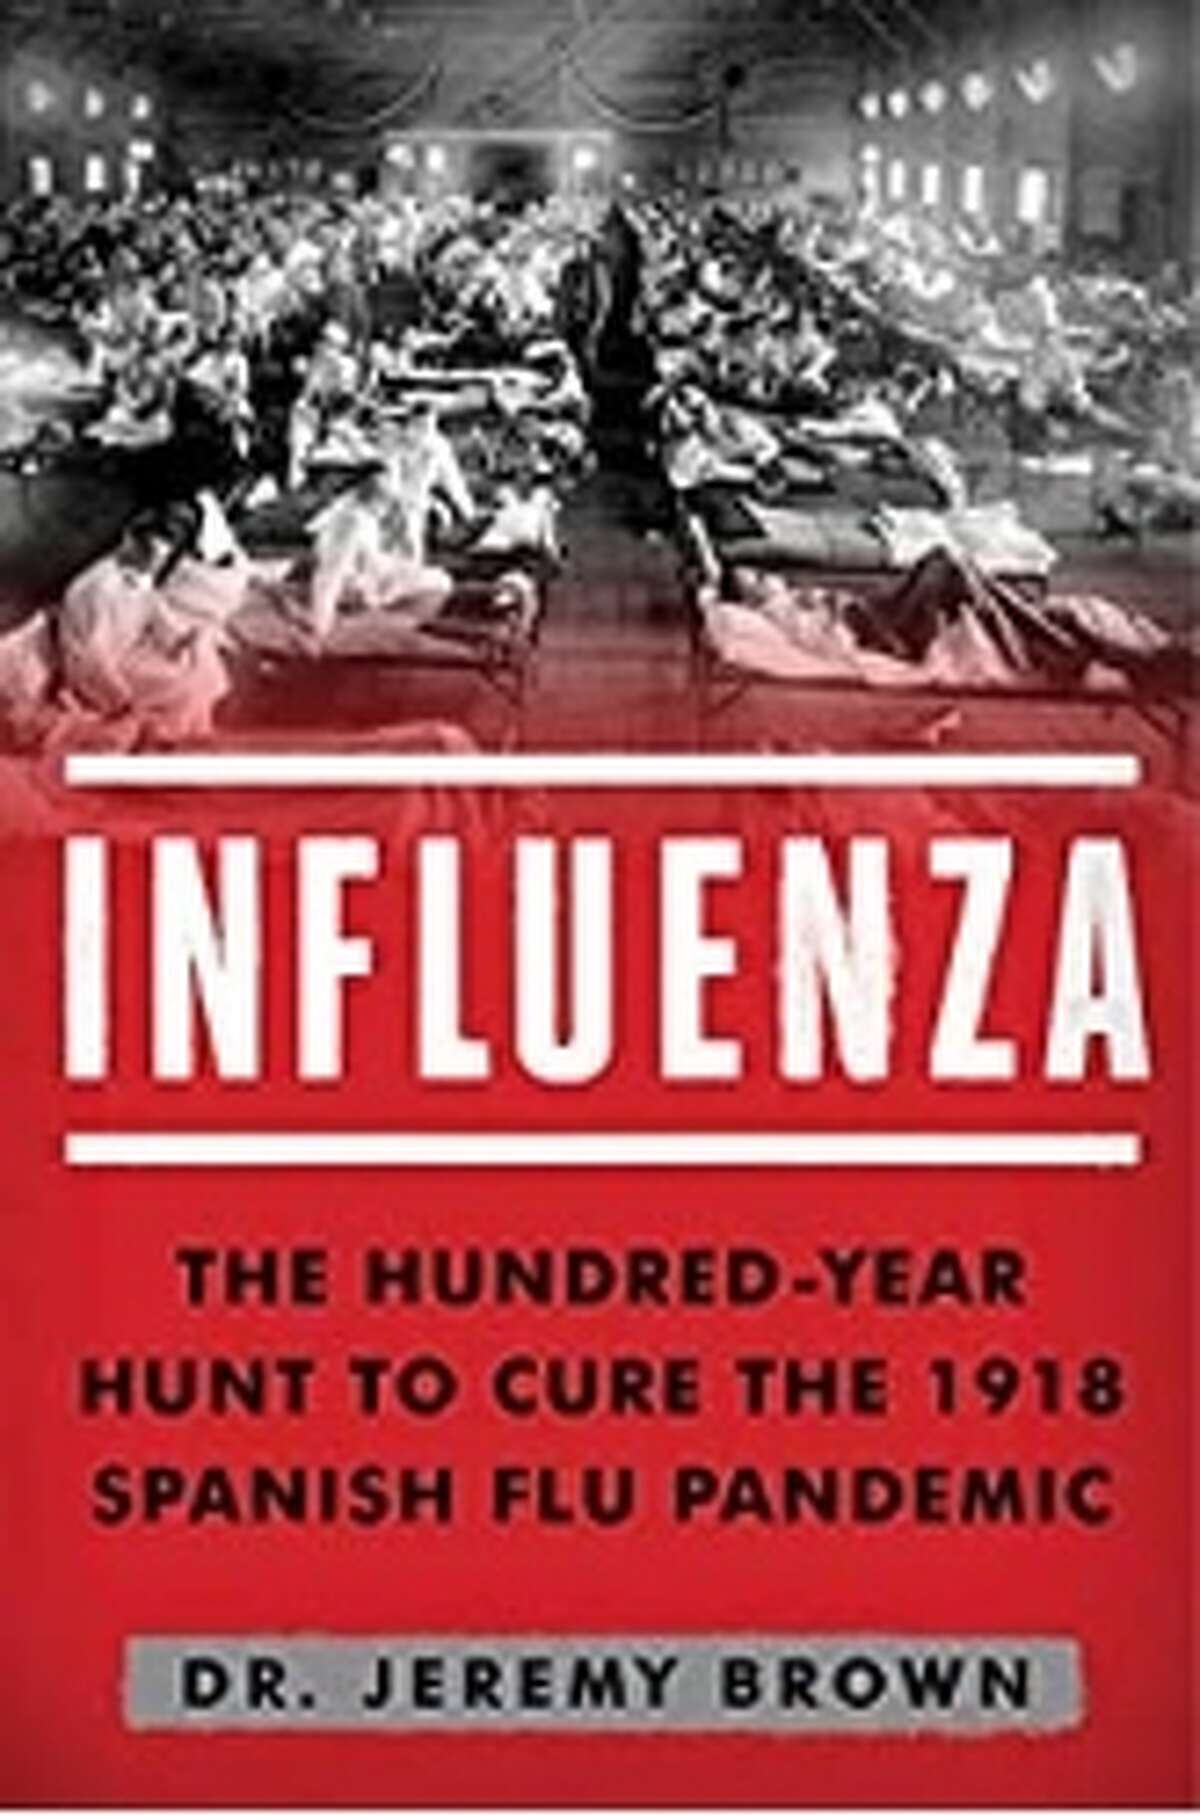 Influenza: The Hundred-Year Hunt to Cure the Deadliest Disease in HistoryDr. Jeremy BrownNot only is this book a compelling history of the 1918 Flu Pandemic, but the chapters about our current lack of preparation for